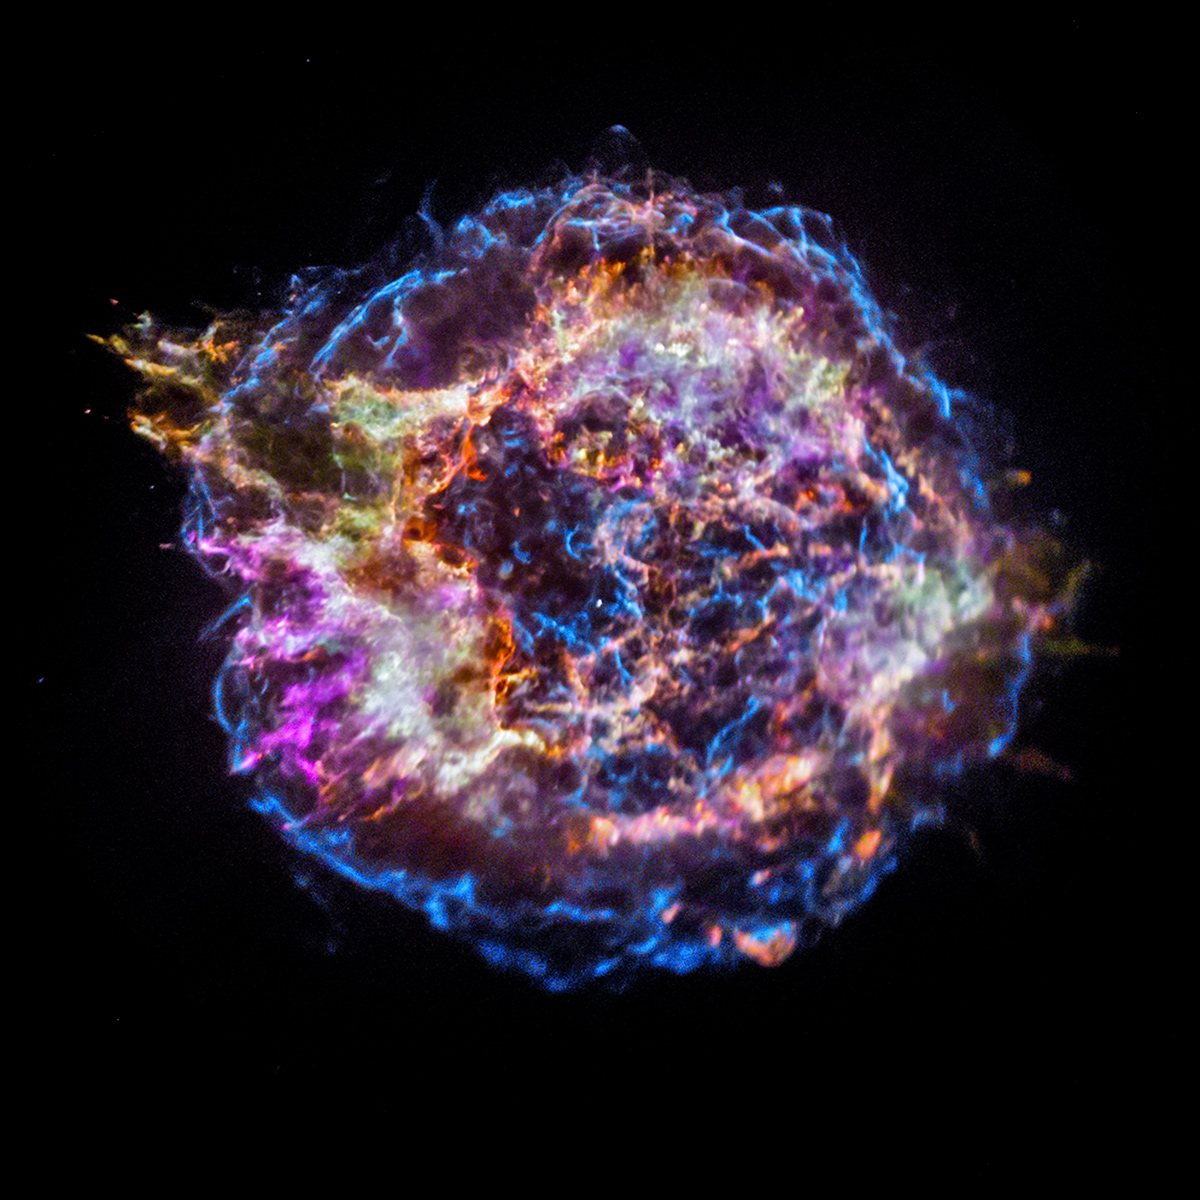 Colorful image of supernova remnant